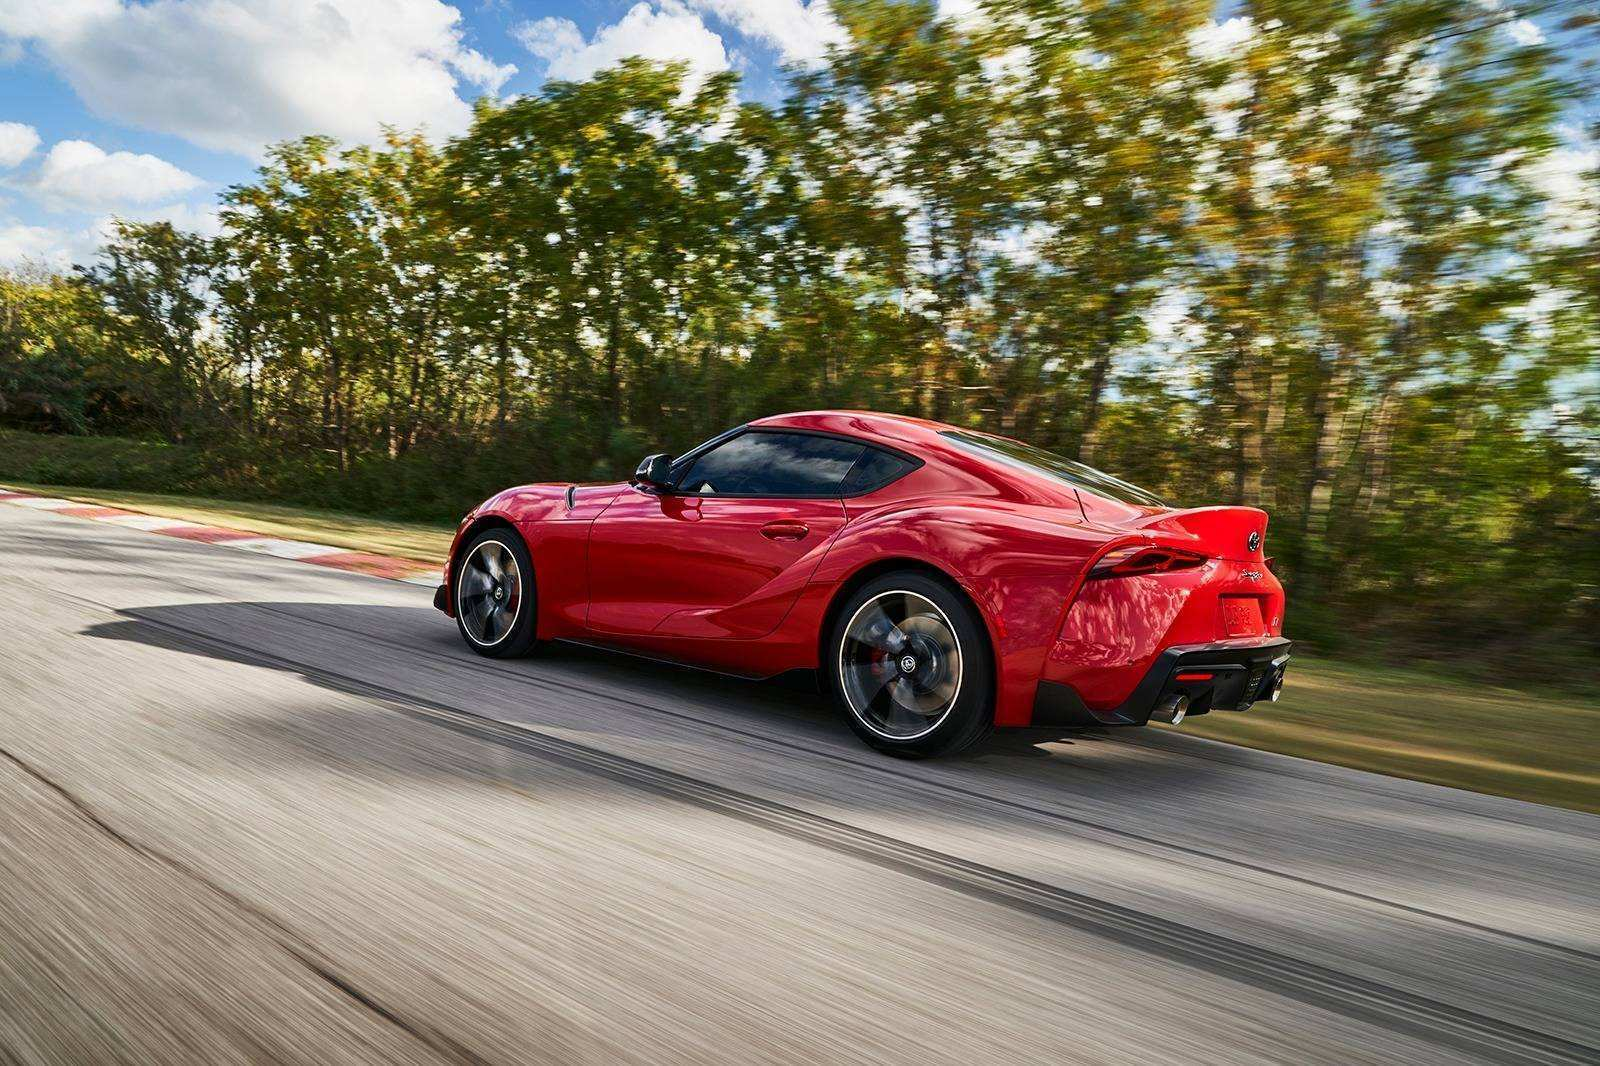 33 New 2020 Toyota Supra Prices